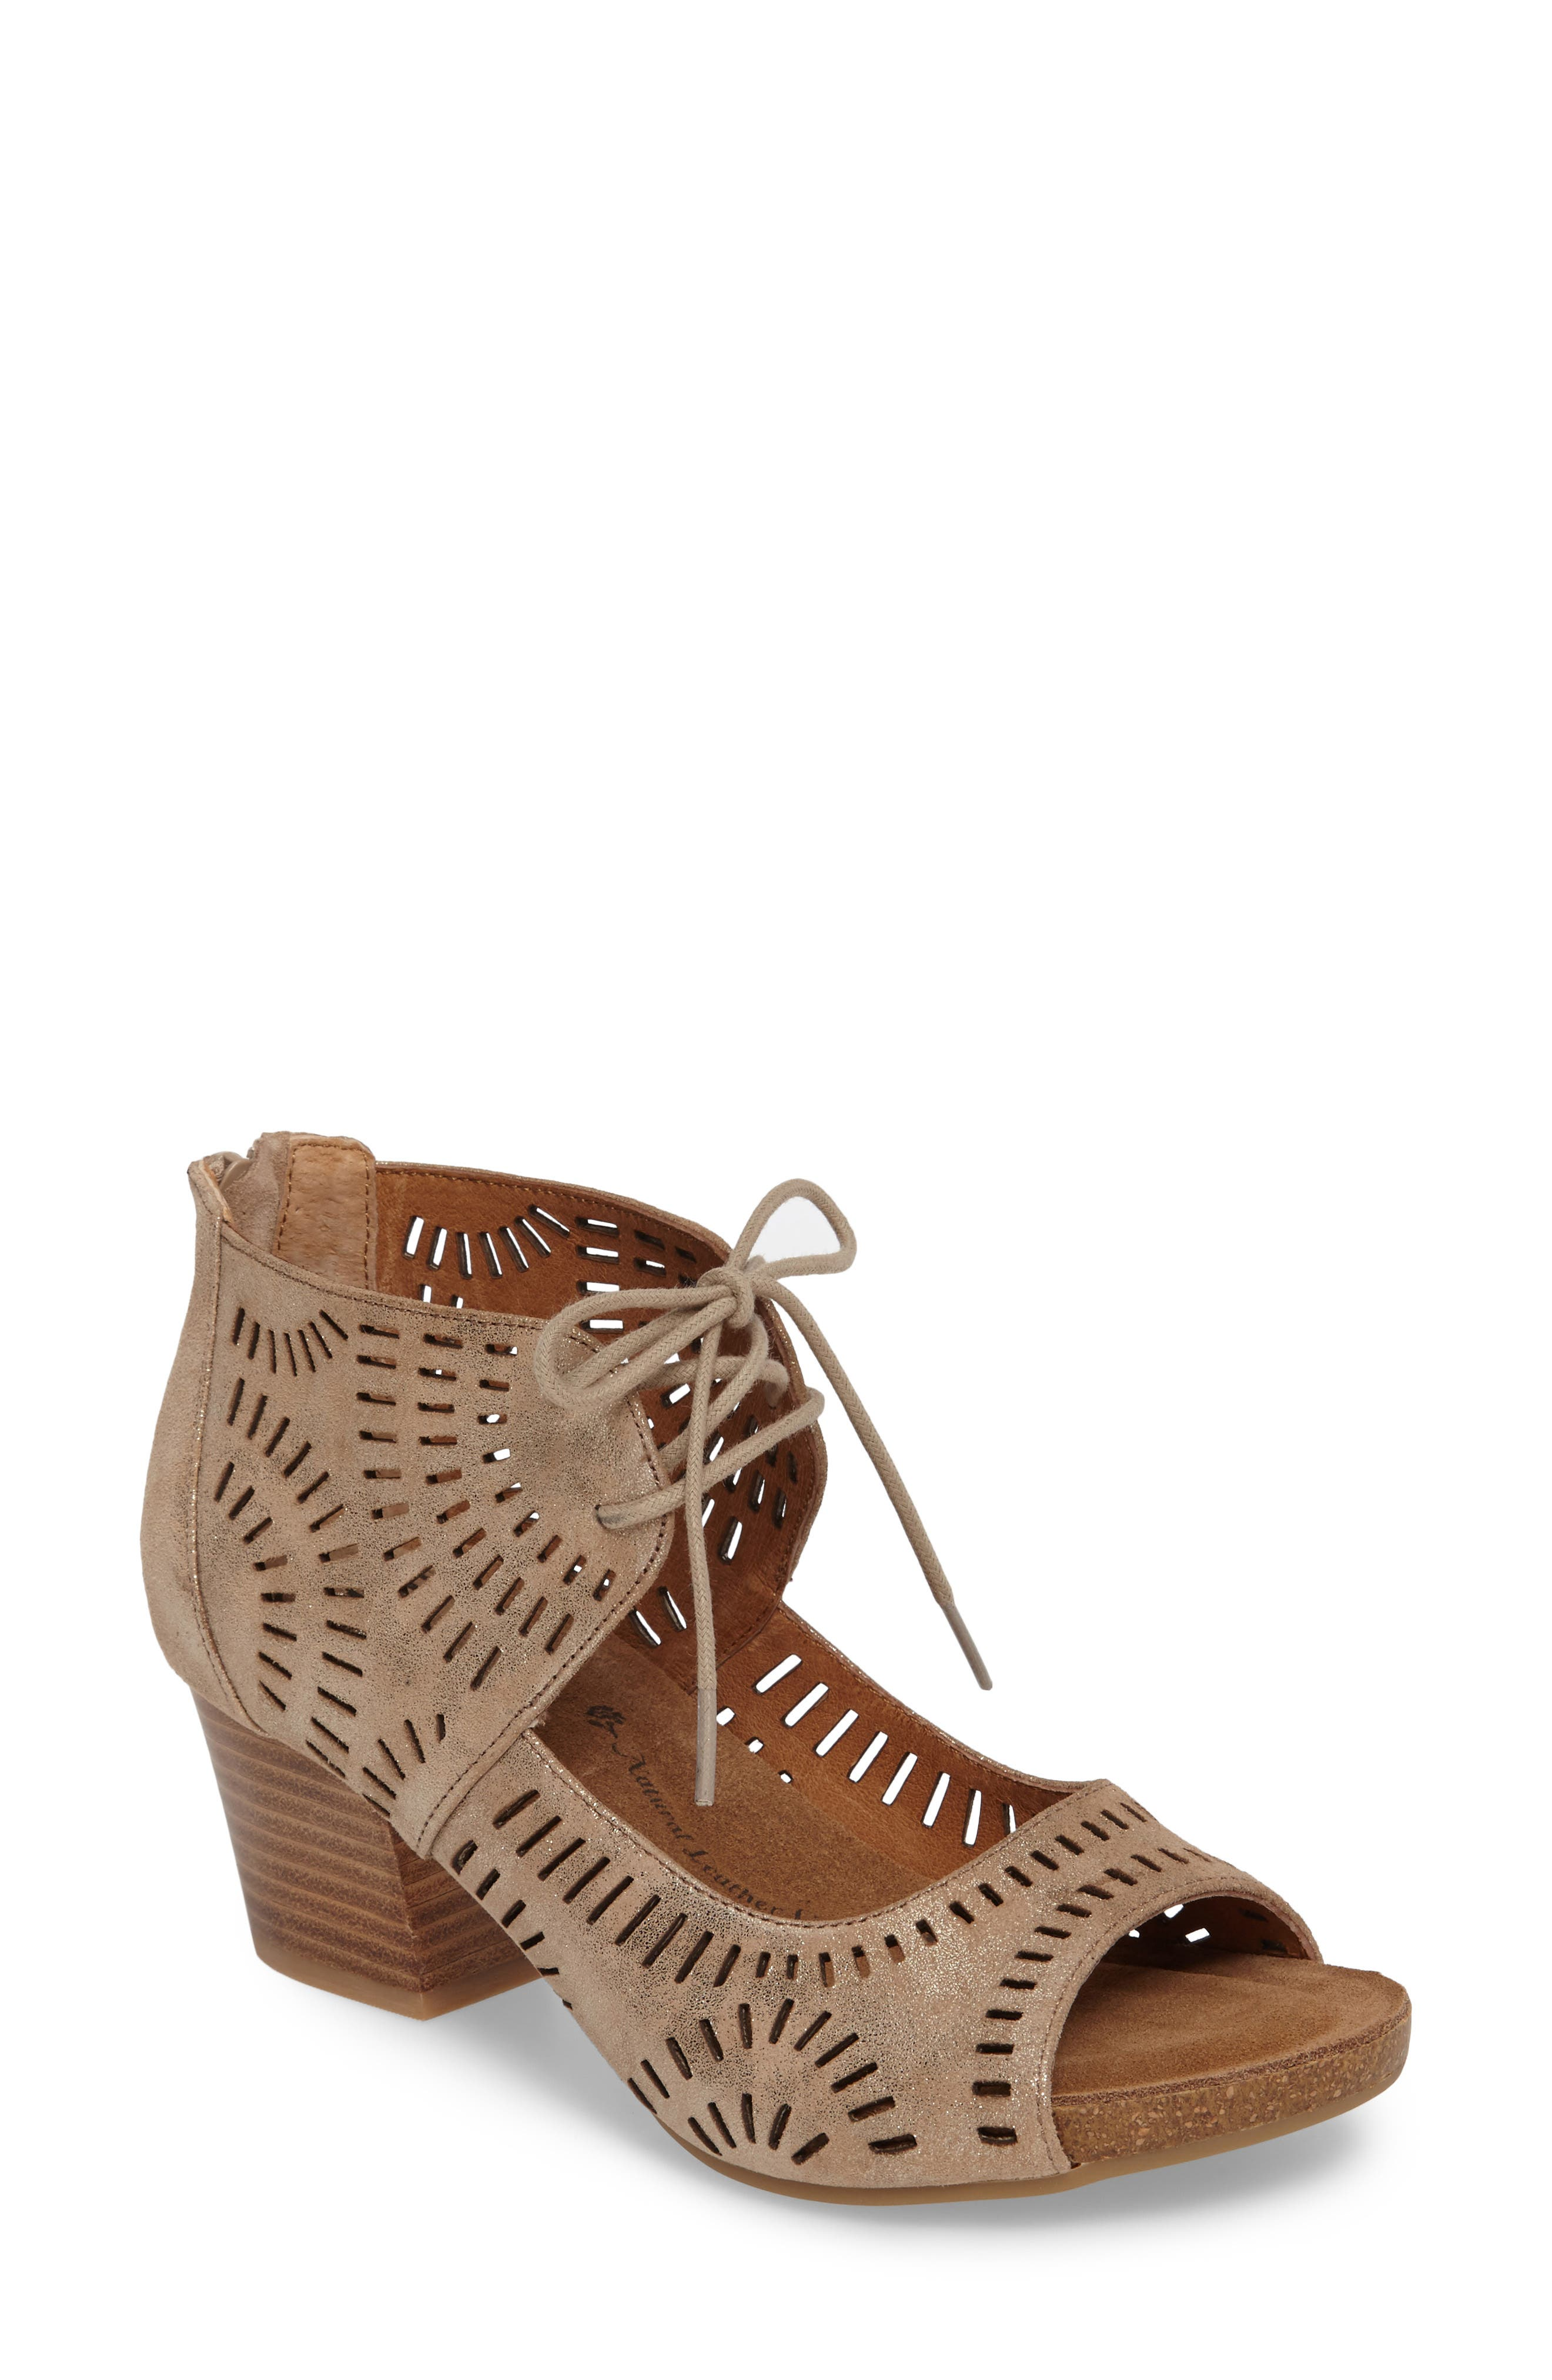 SÖFFT, Modesto Perforated Sandal, Main thumbnail 1, color, ANTHRACITE DISTRESSED FOIL